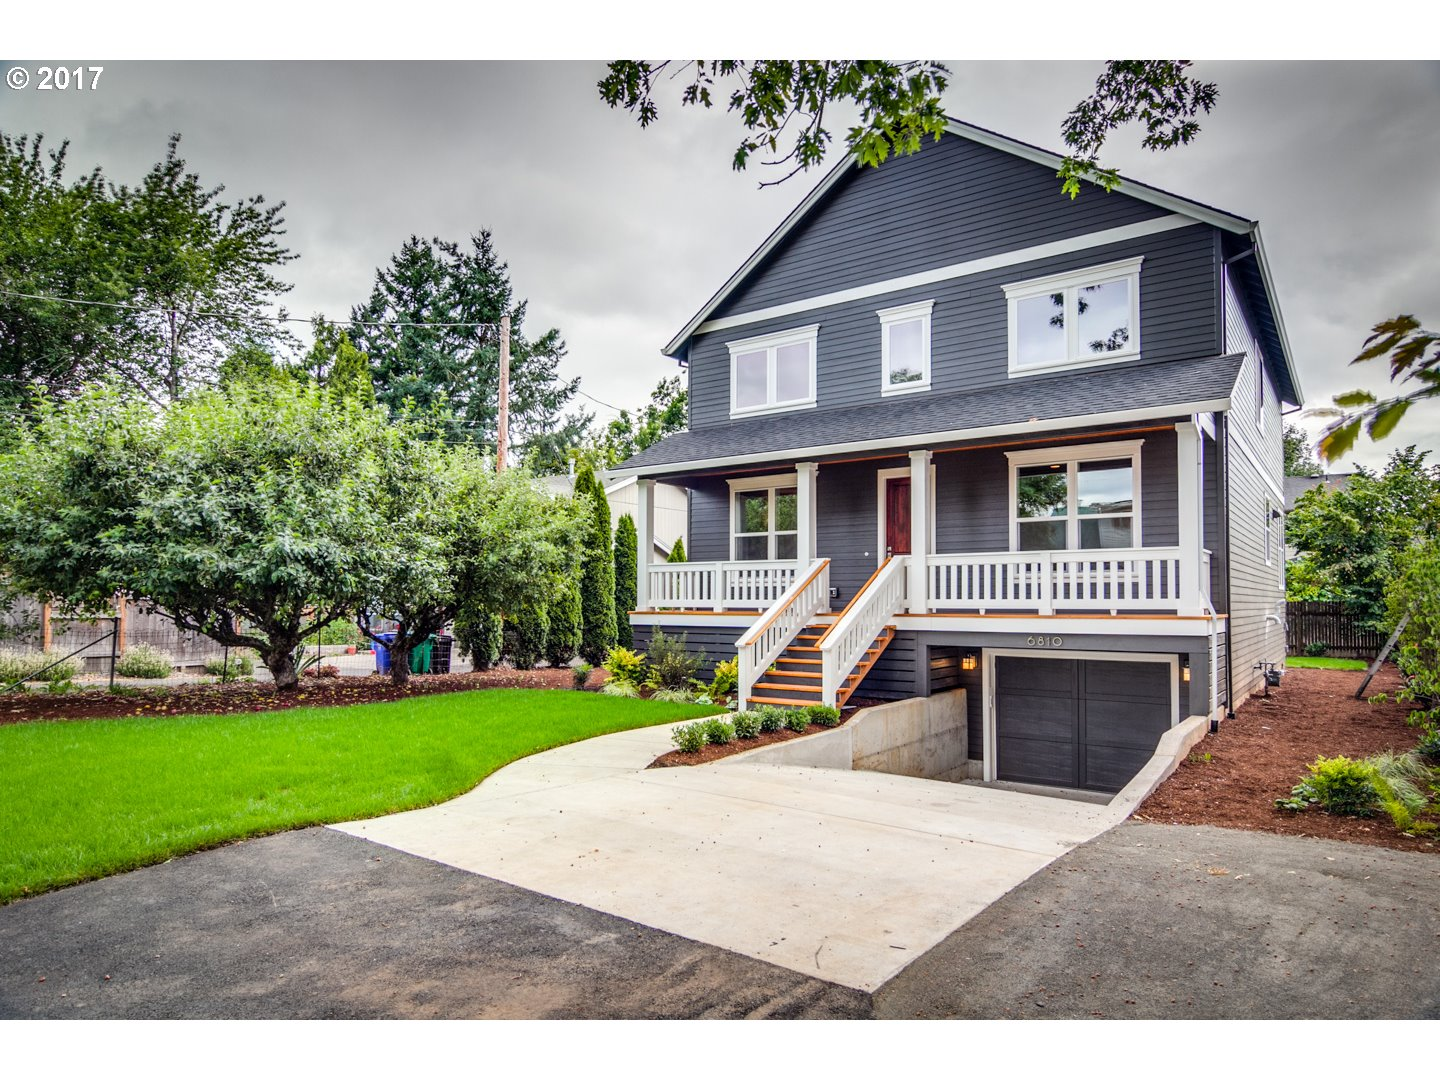 6810 Se 48th Ave, Portland, OR 97206